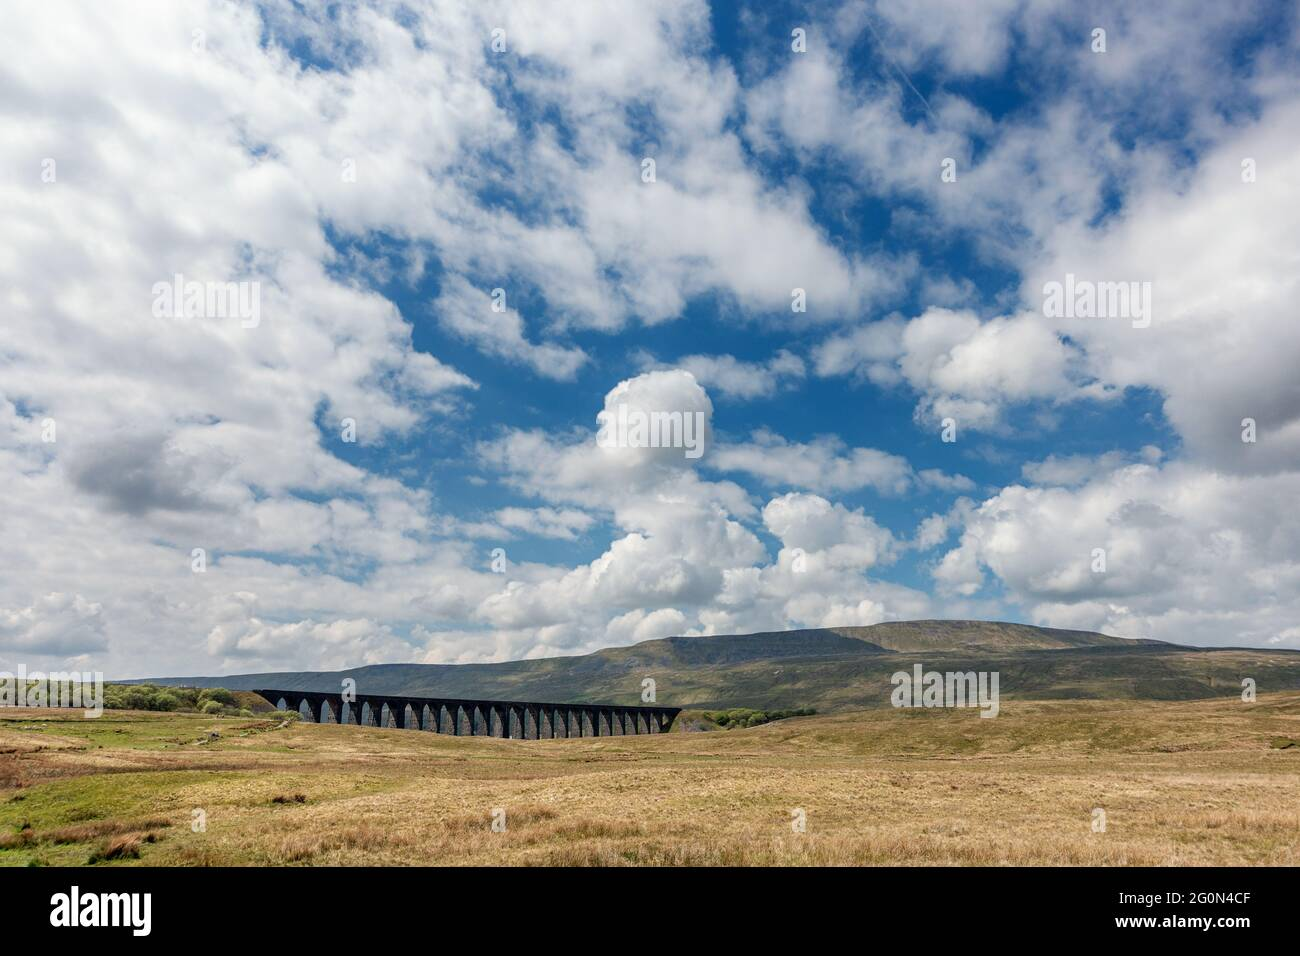 Stunning panoramic view of Whernside with the Ribblehead Viaduct on a sunny day, Yorkshire Dales National Park, UK Stock Photo